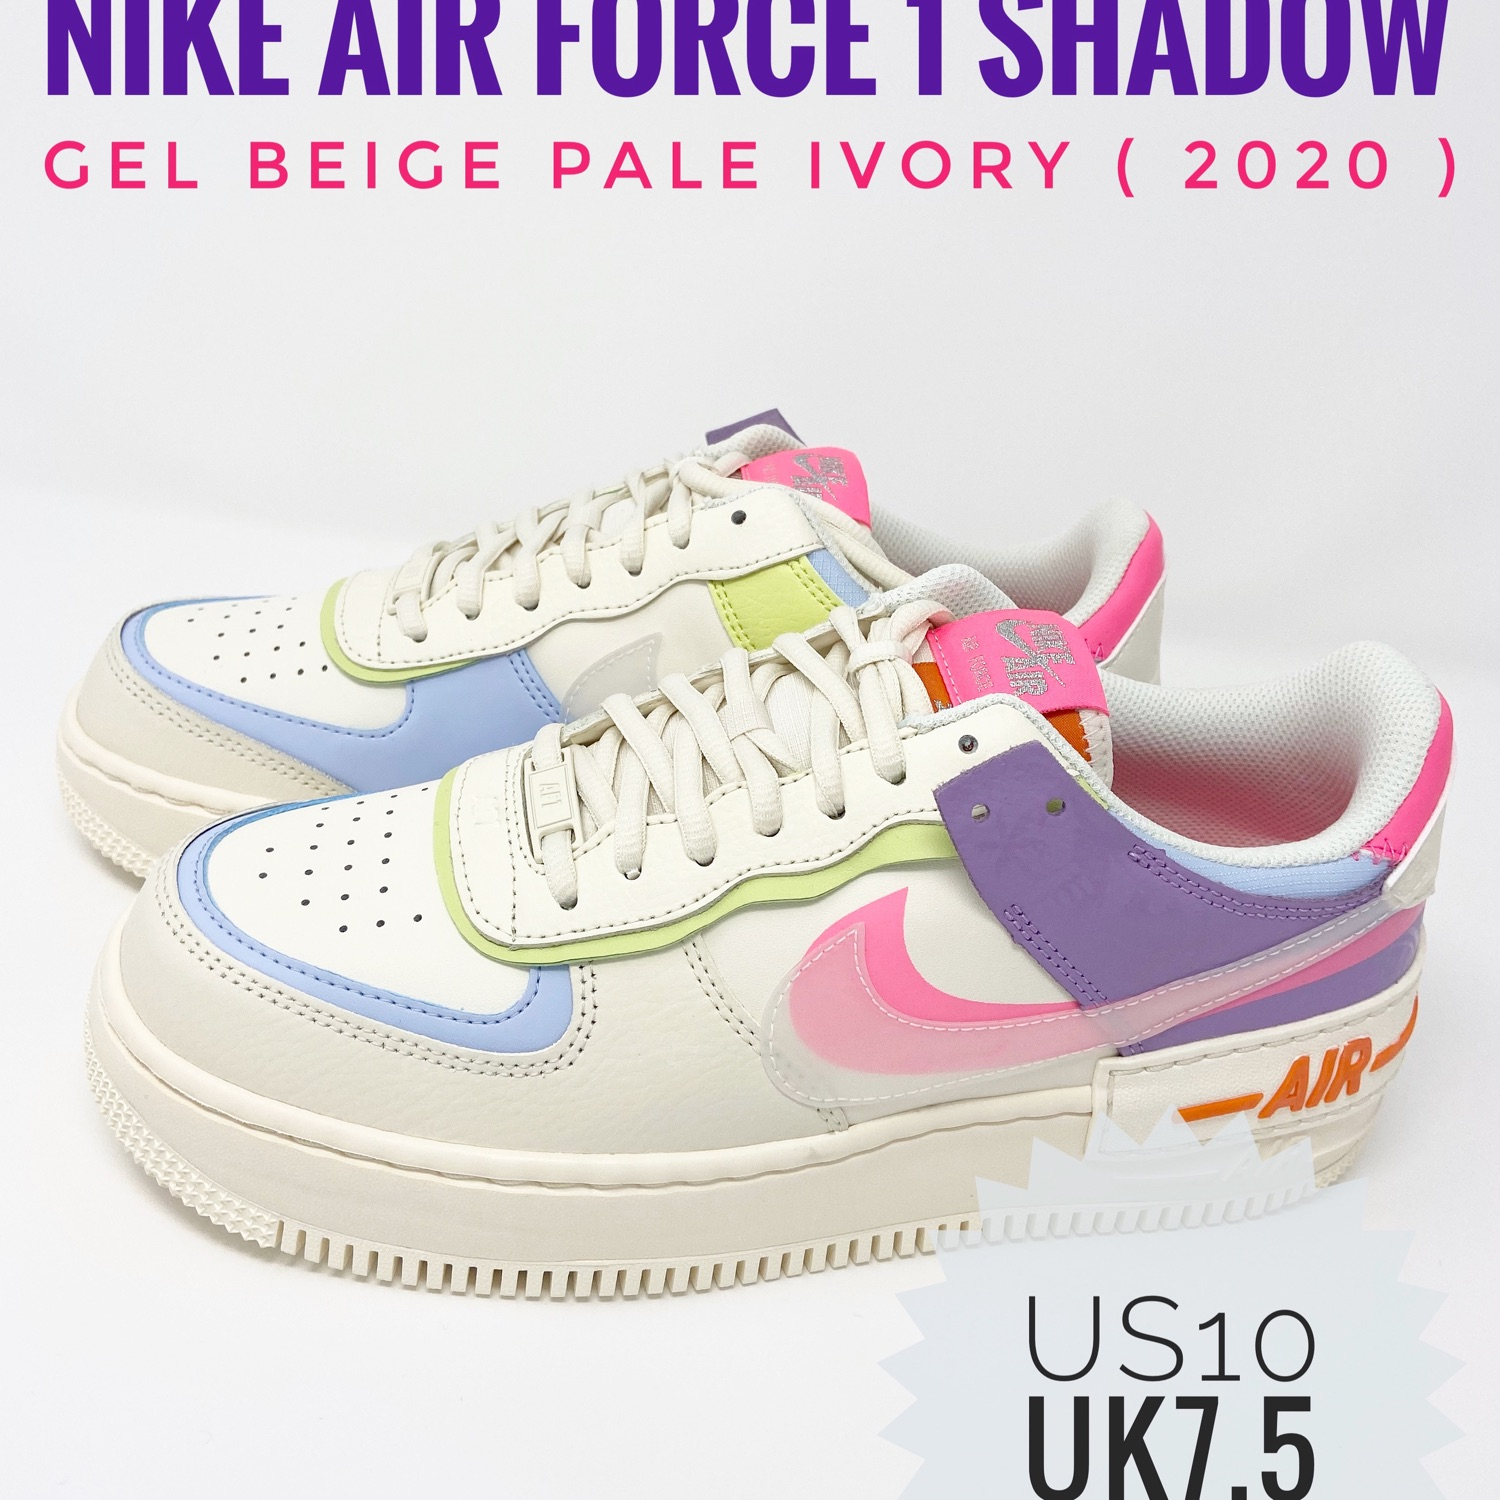 Air Force 1 Shadow Pale Ivory W However, travis scott's attention to detail is exactly how you can tell a real cactus jack from fake one. air force 1 shadow pale ivory w